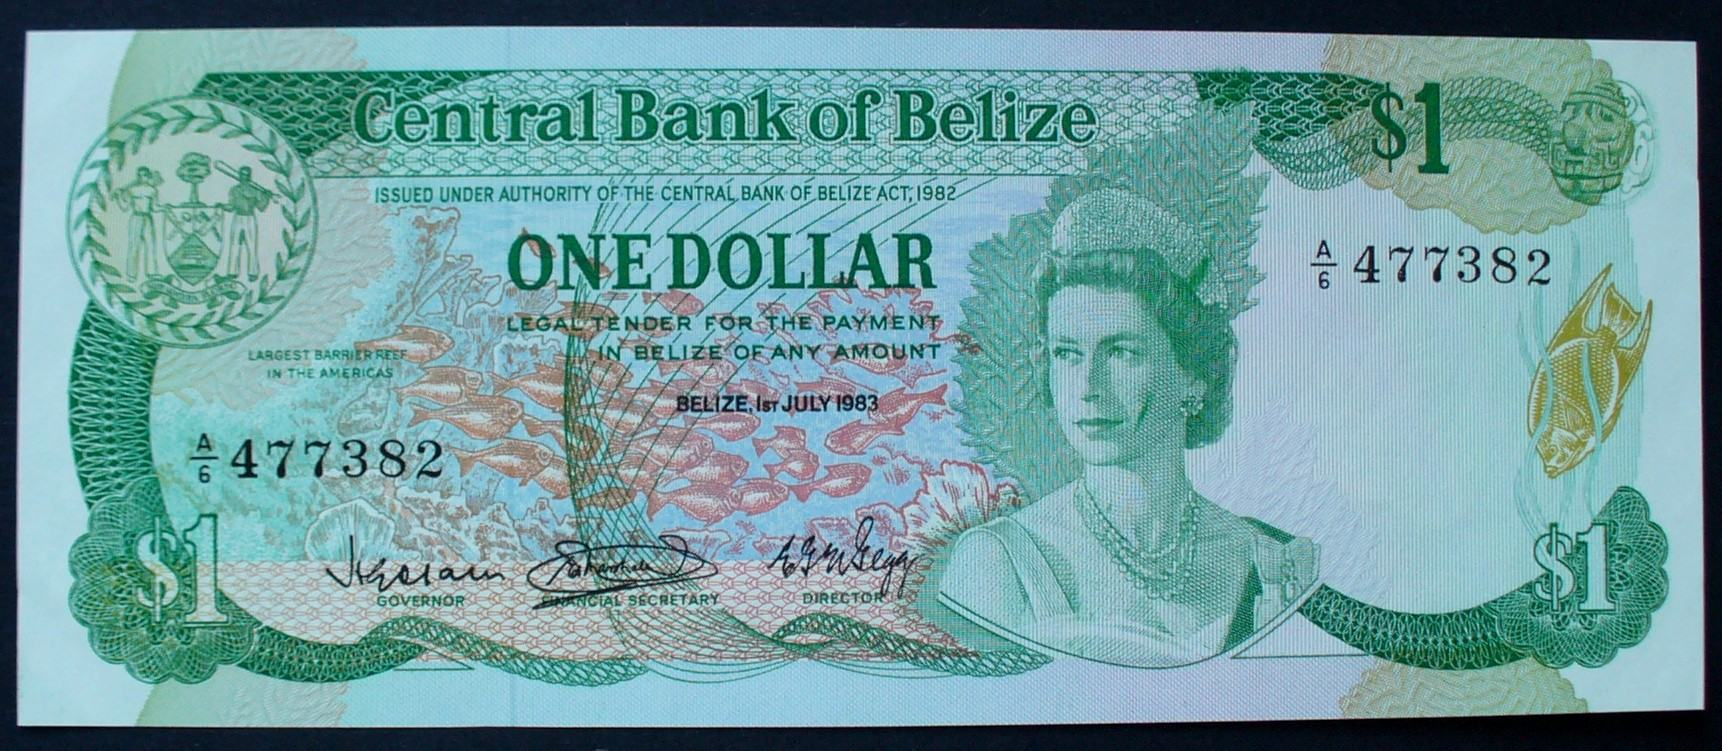 Belize P. 43 / Serie A/6 477383 1 Dollar 1.7.1983 kfr 